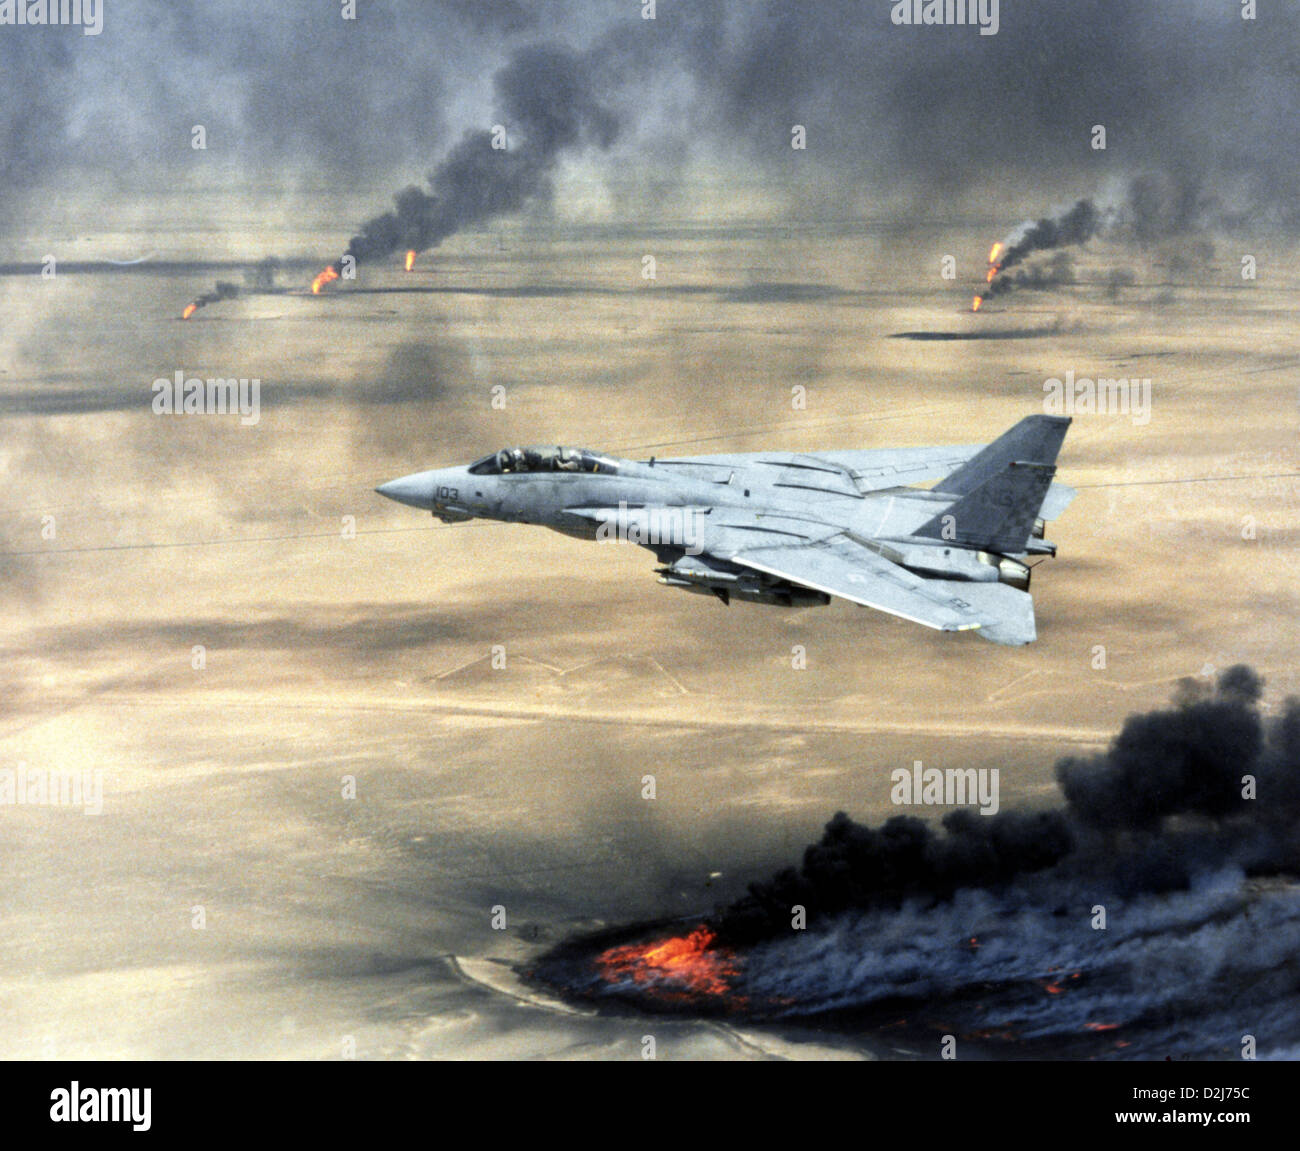 A US Navy F-14A Tomcat in flight over burning Kuwaiti oil wells during Operation Desert Storm February 1, 1991 - Stock Image